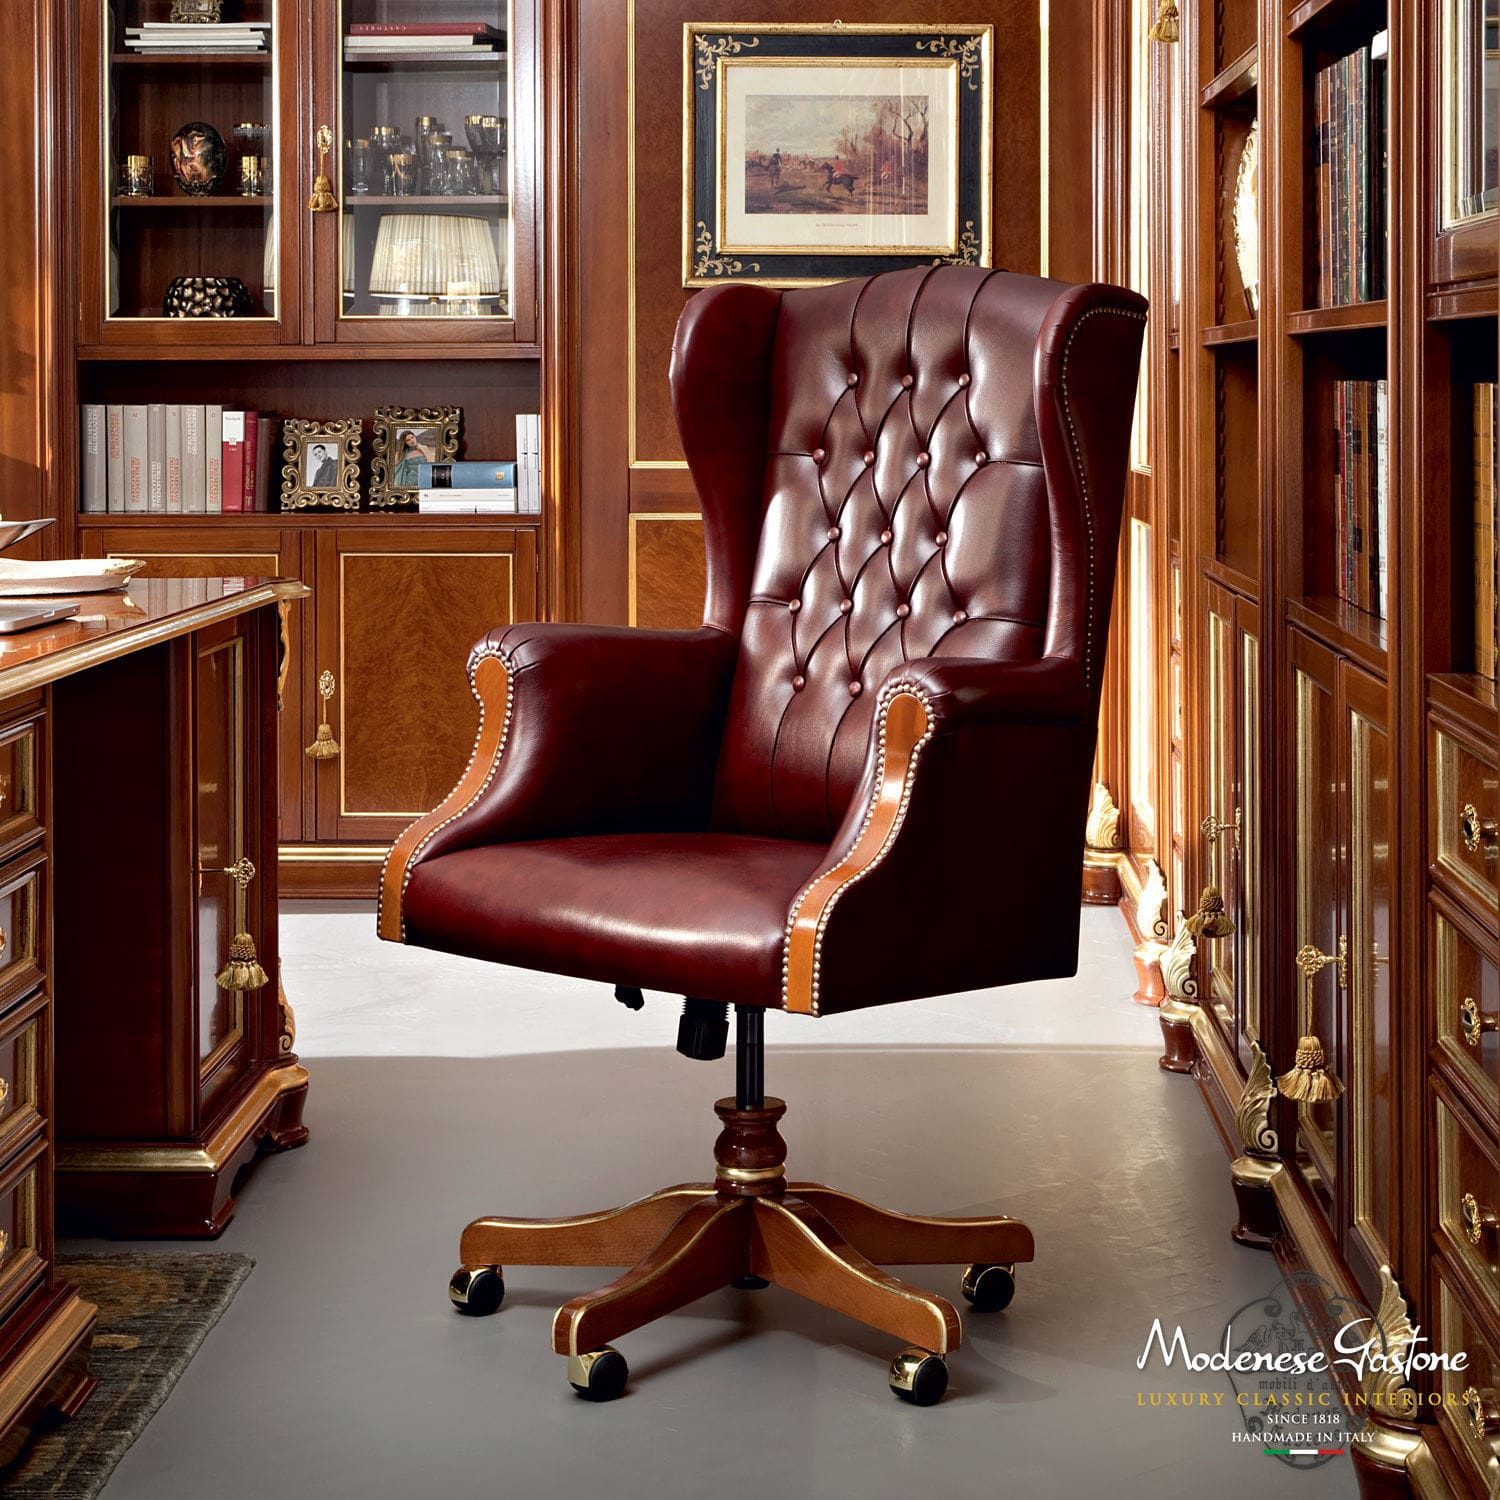 Chesterfield office chair - Chesterfield Office Armchair Leather On Casters Swivel Bella Vita Modenese Gastone Luxury Classic